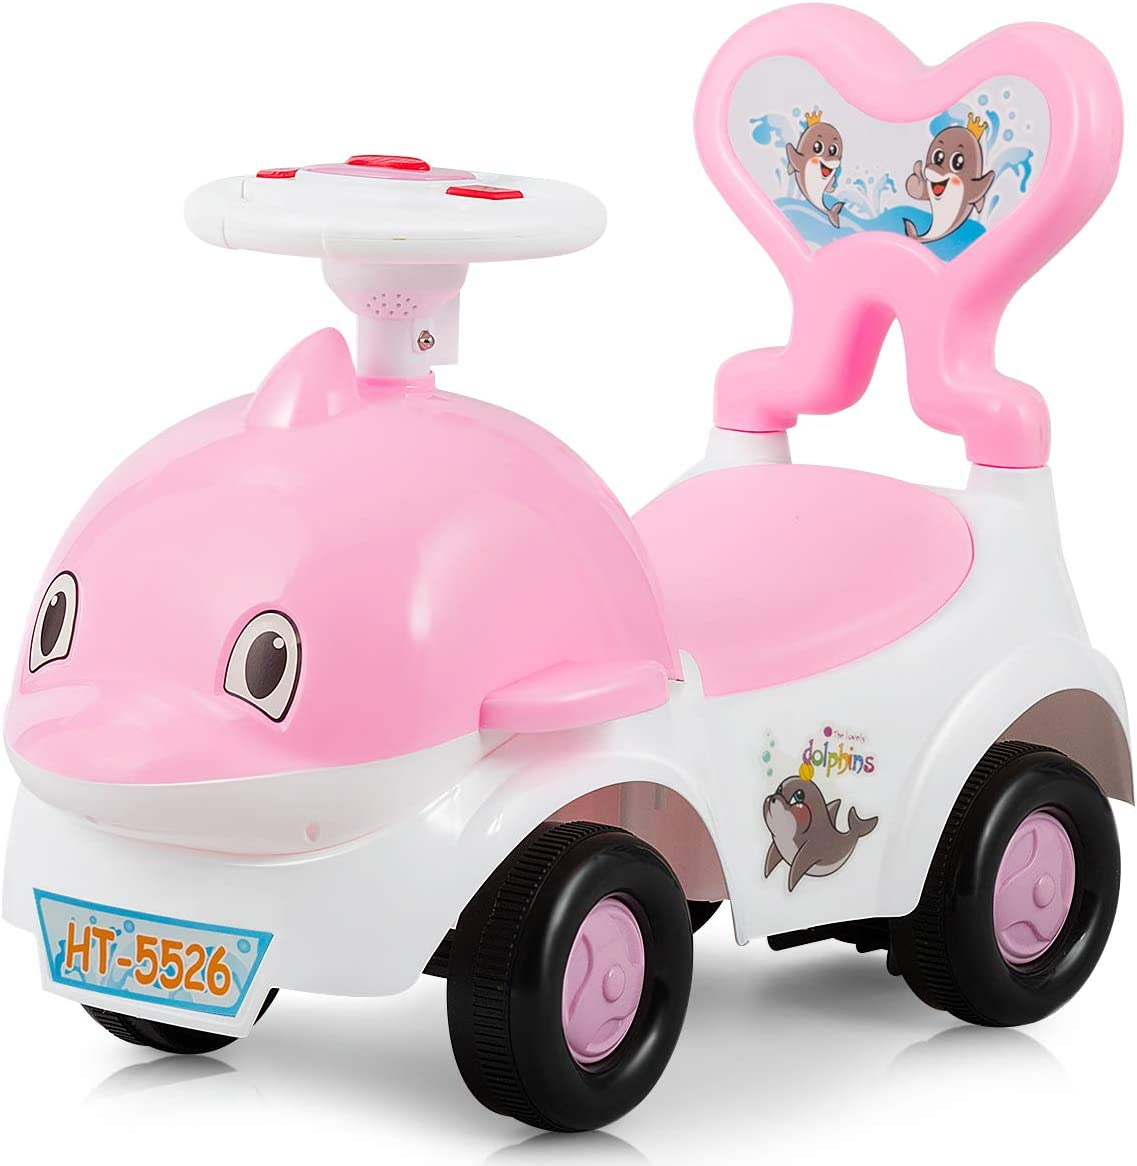 Baby Joy 3 in 1 Push and Ride Racer for Kids, Ride-on Toy, Walker & Sliding Car, Cartoon Pushing Cart with Sound, Light, Backrest, Safe Brake and ...